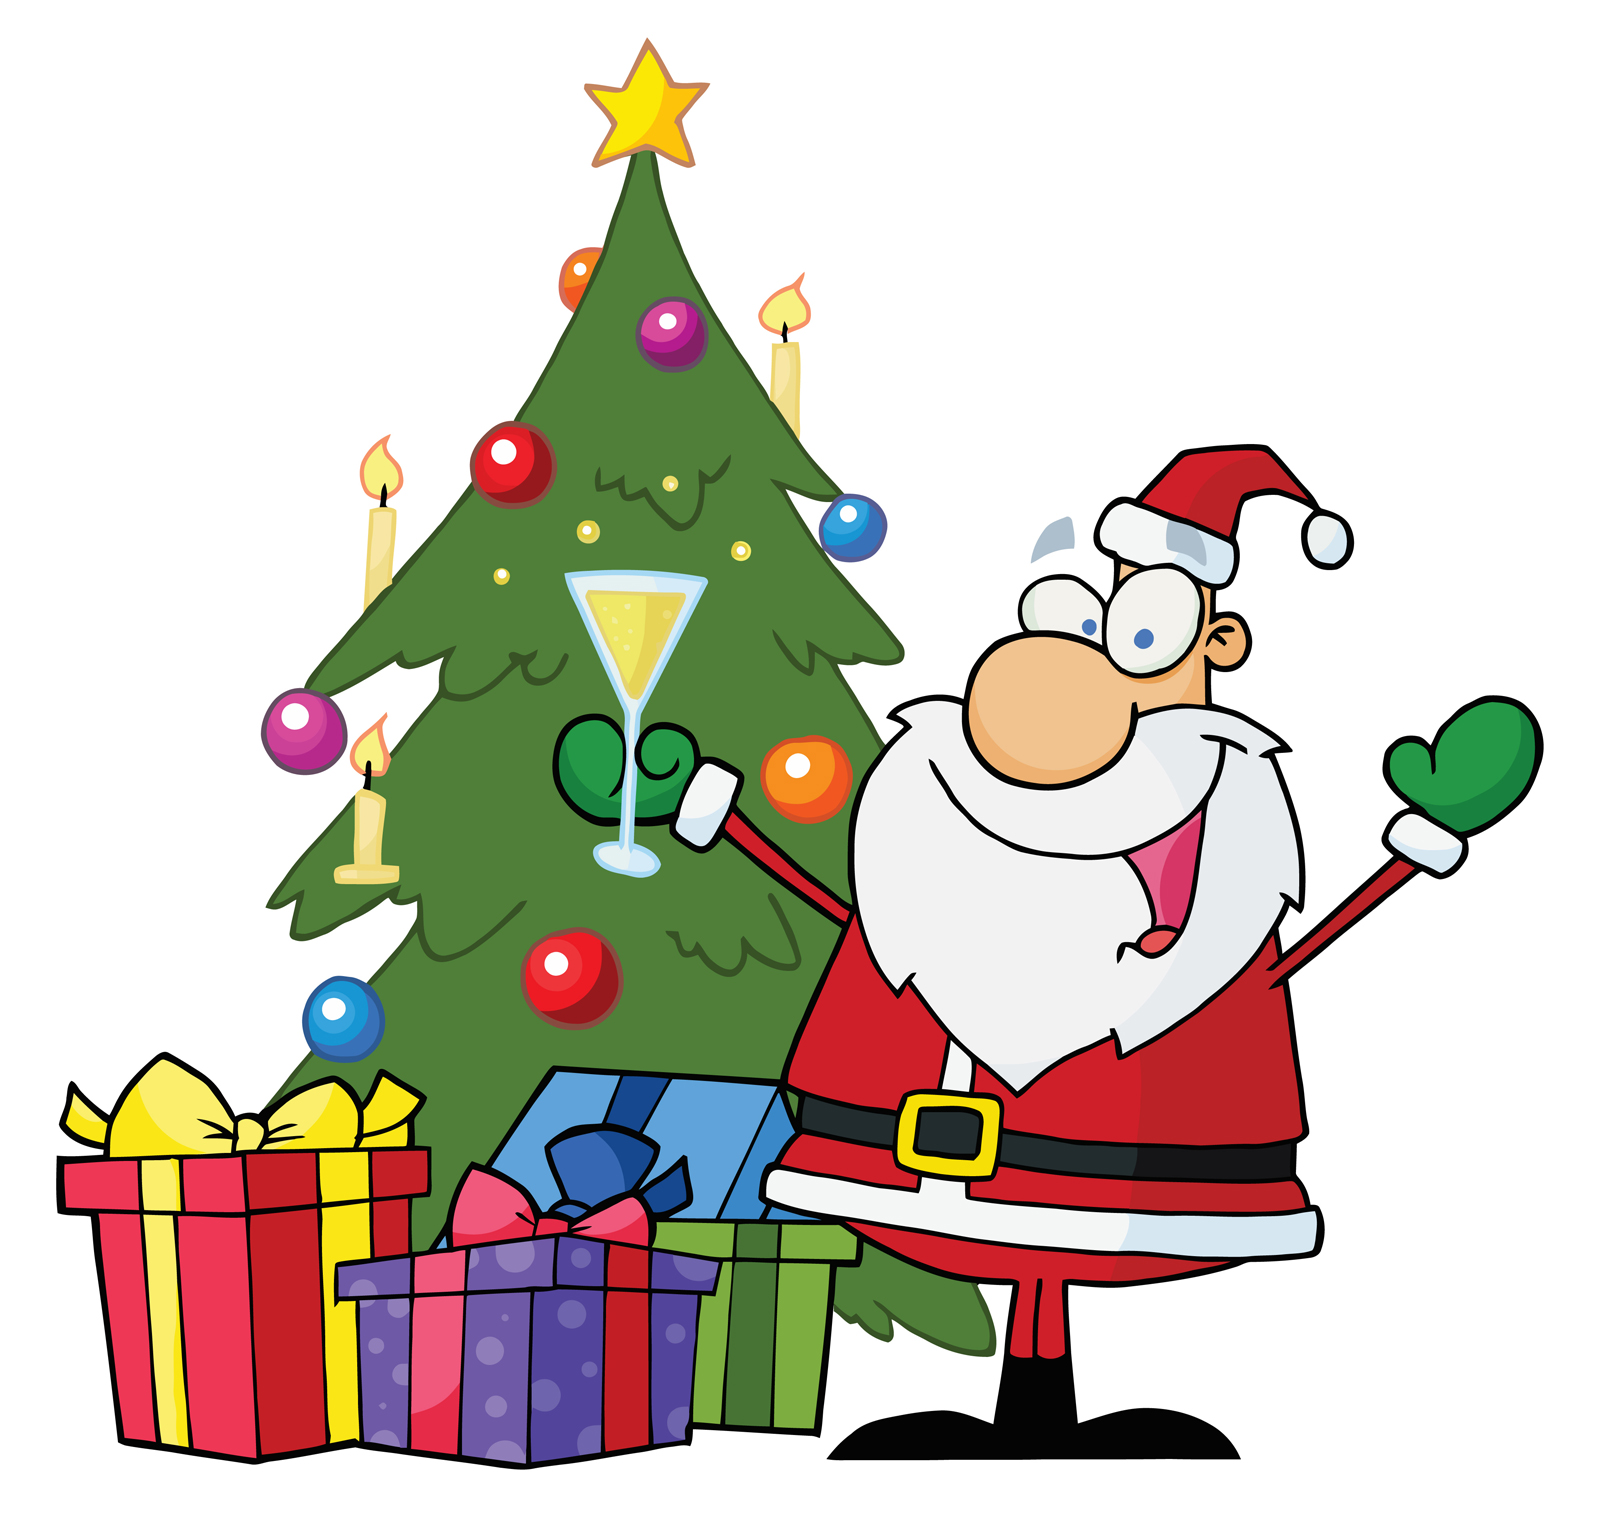 Happy christmas tree clipart carfts wishes greetings